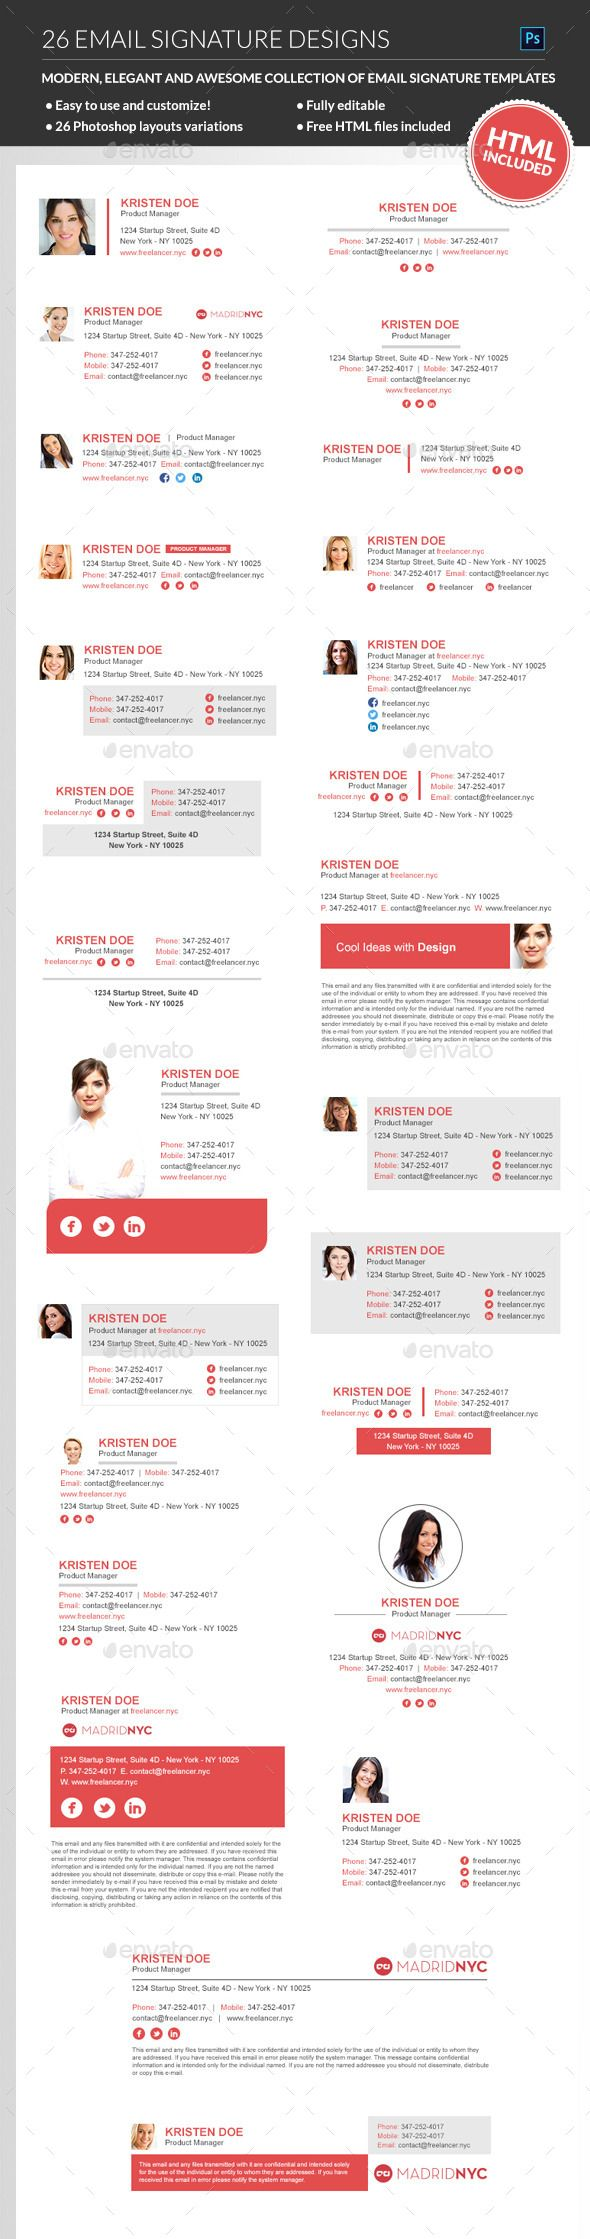 A sharp, creative and professional bundle of email signature templates for any kind of business, that will suit perfect for your company email signature. Listed among the most elegant & clean looking email-signatures templates